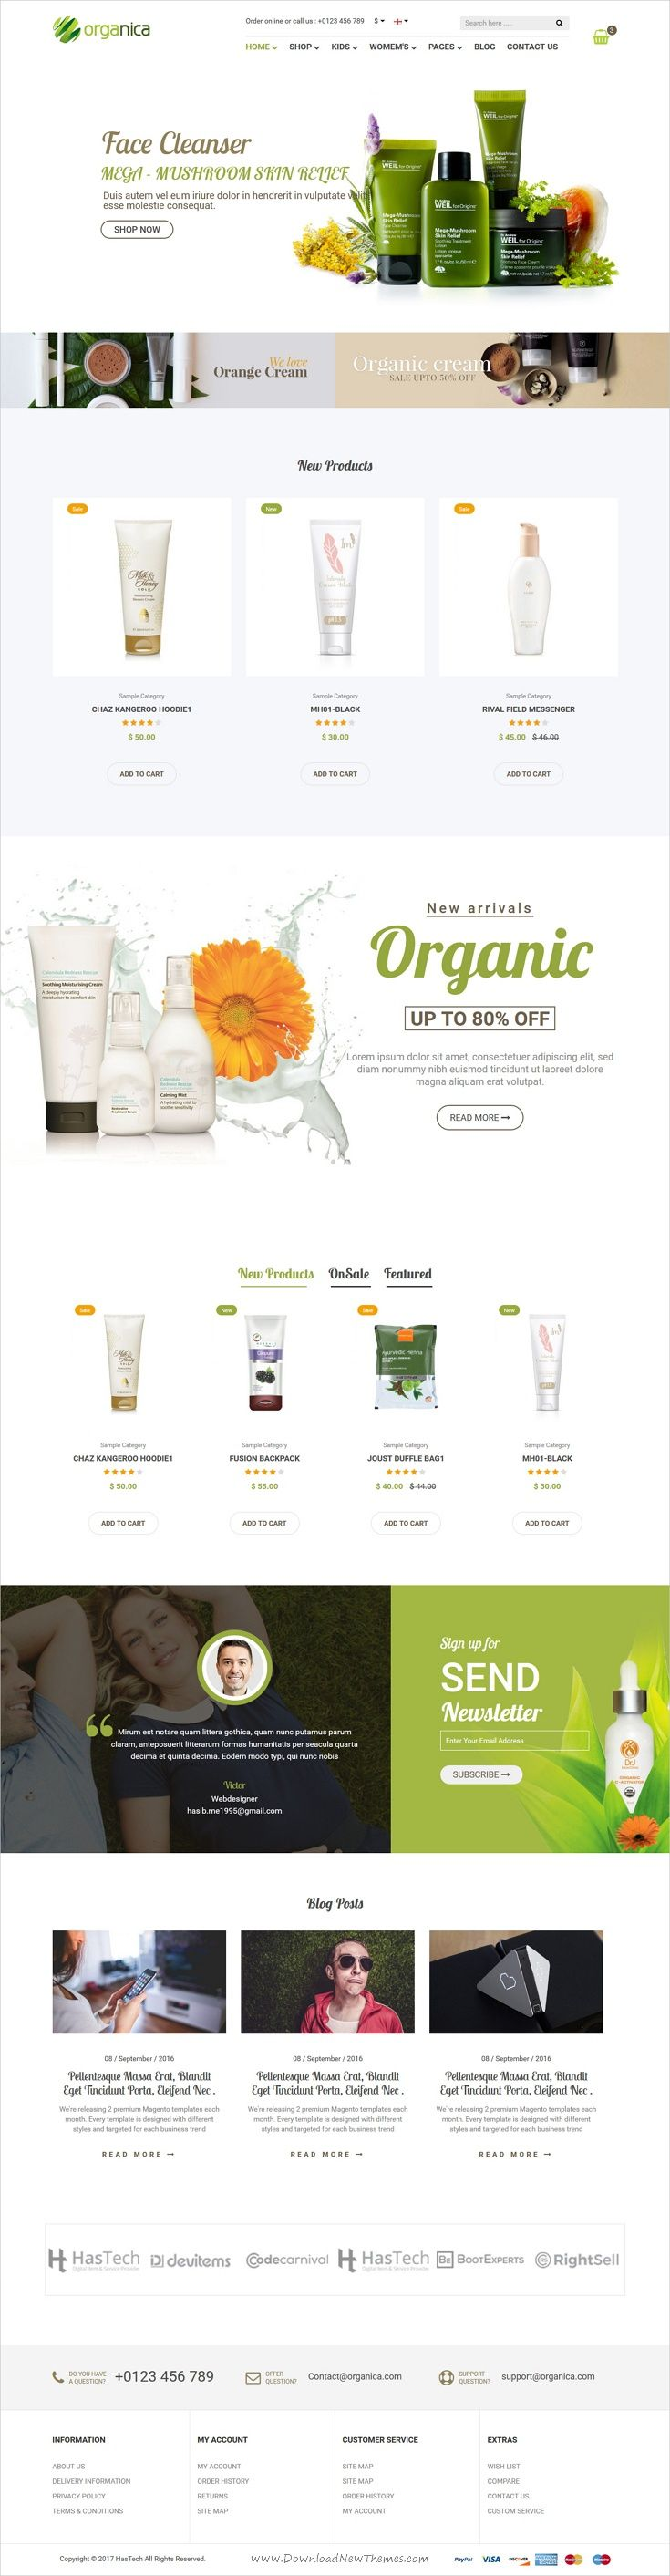 Organica is a wonderful responsive HTML #bootstrap template for #organic and beauty #shop eCommerce website with 6 unique homepage layouts download now➩ https://themeforest.net/item/organica-organic-beauty-natural-cosmetics-food-farn-and-eco-html-template/19433054?ref=Datasata